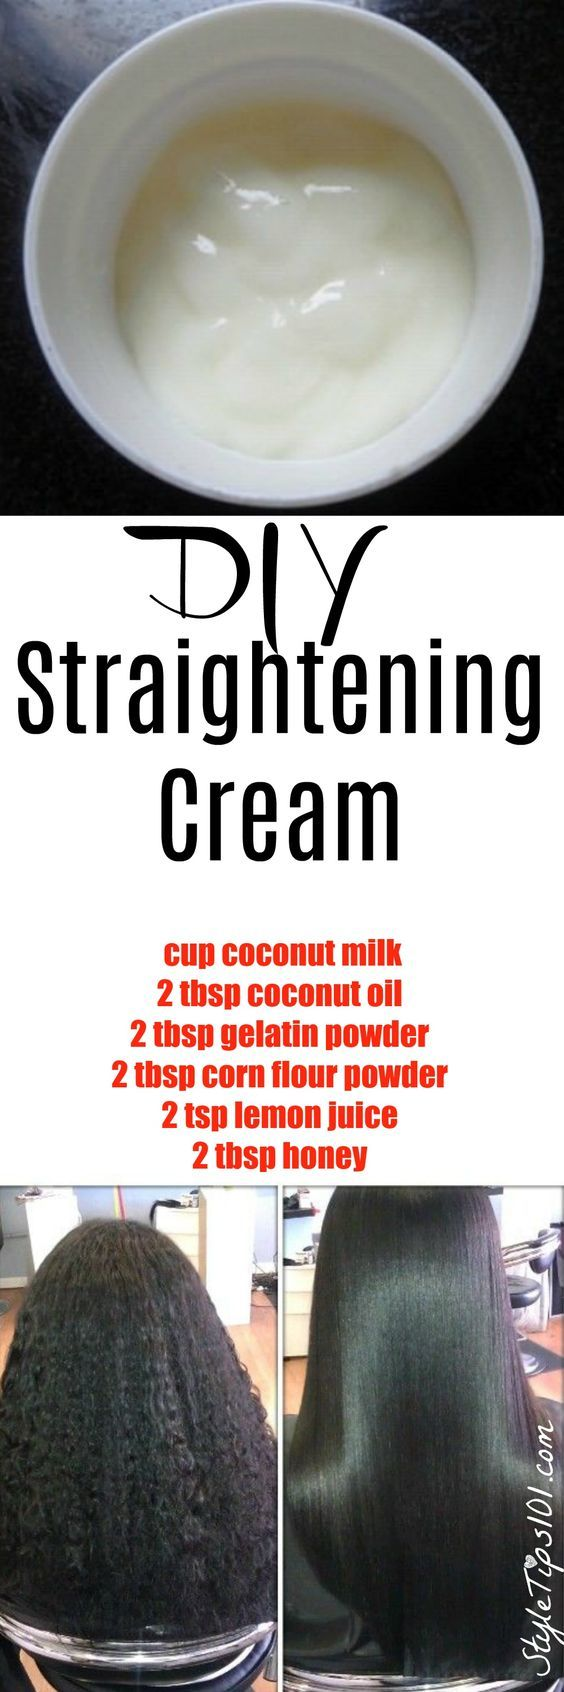 If you have curly or wavy hair, this DIY hair straightening cream will do wonders for you! Even if you already have straight hair, this cream will give you super sleek, shiny strands. Made with all…